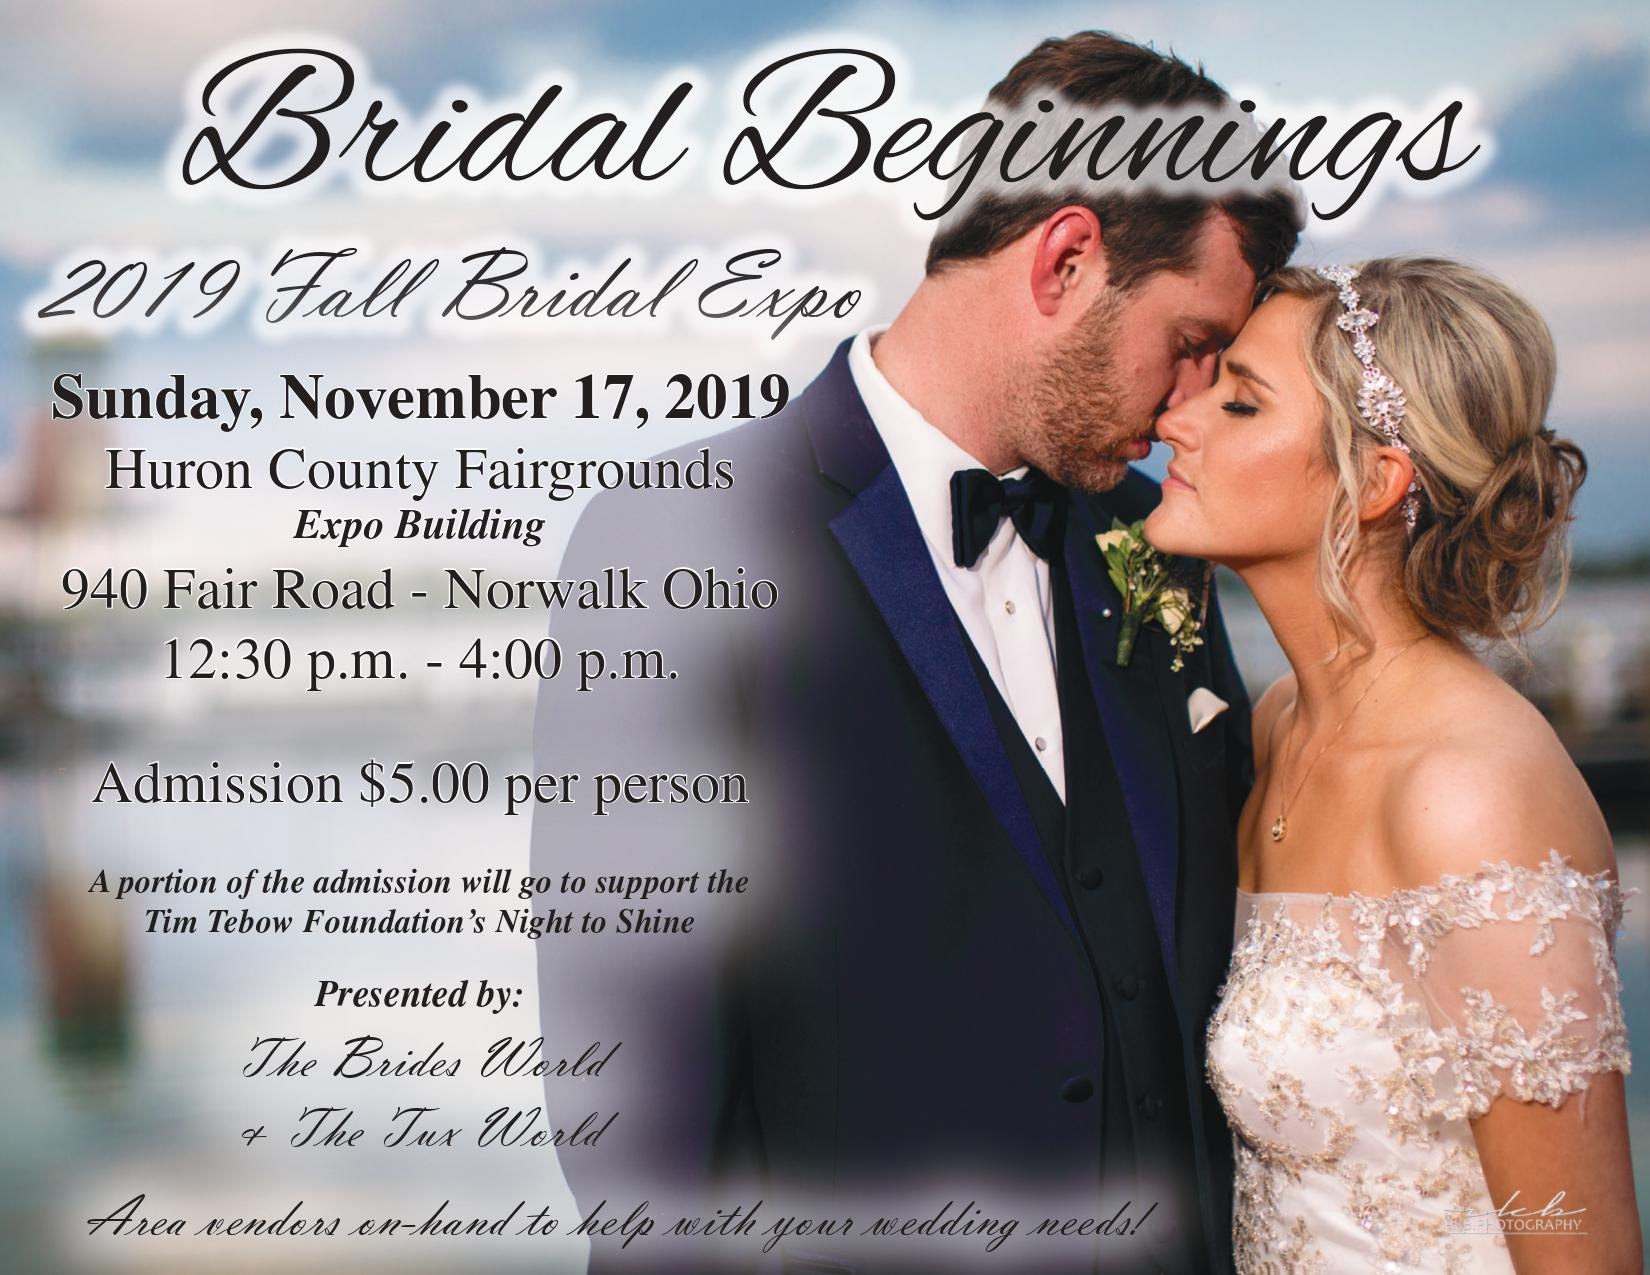 Sunday, November 17, 2019. Huron County Fairgrounds Expo Building 940 Fair Road - Norwalk Ohio. 12:30 p.m. - 4:00 p.m. Admission $5.00 per person. A portion of the admission will go to support the Tim Tebow Foundation's Night to Shine Presented by: The Brides World & The Tux World Area vendors on-hand to help with your wedding needs!